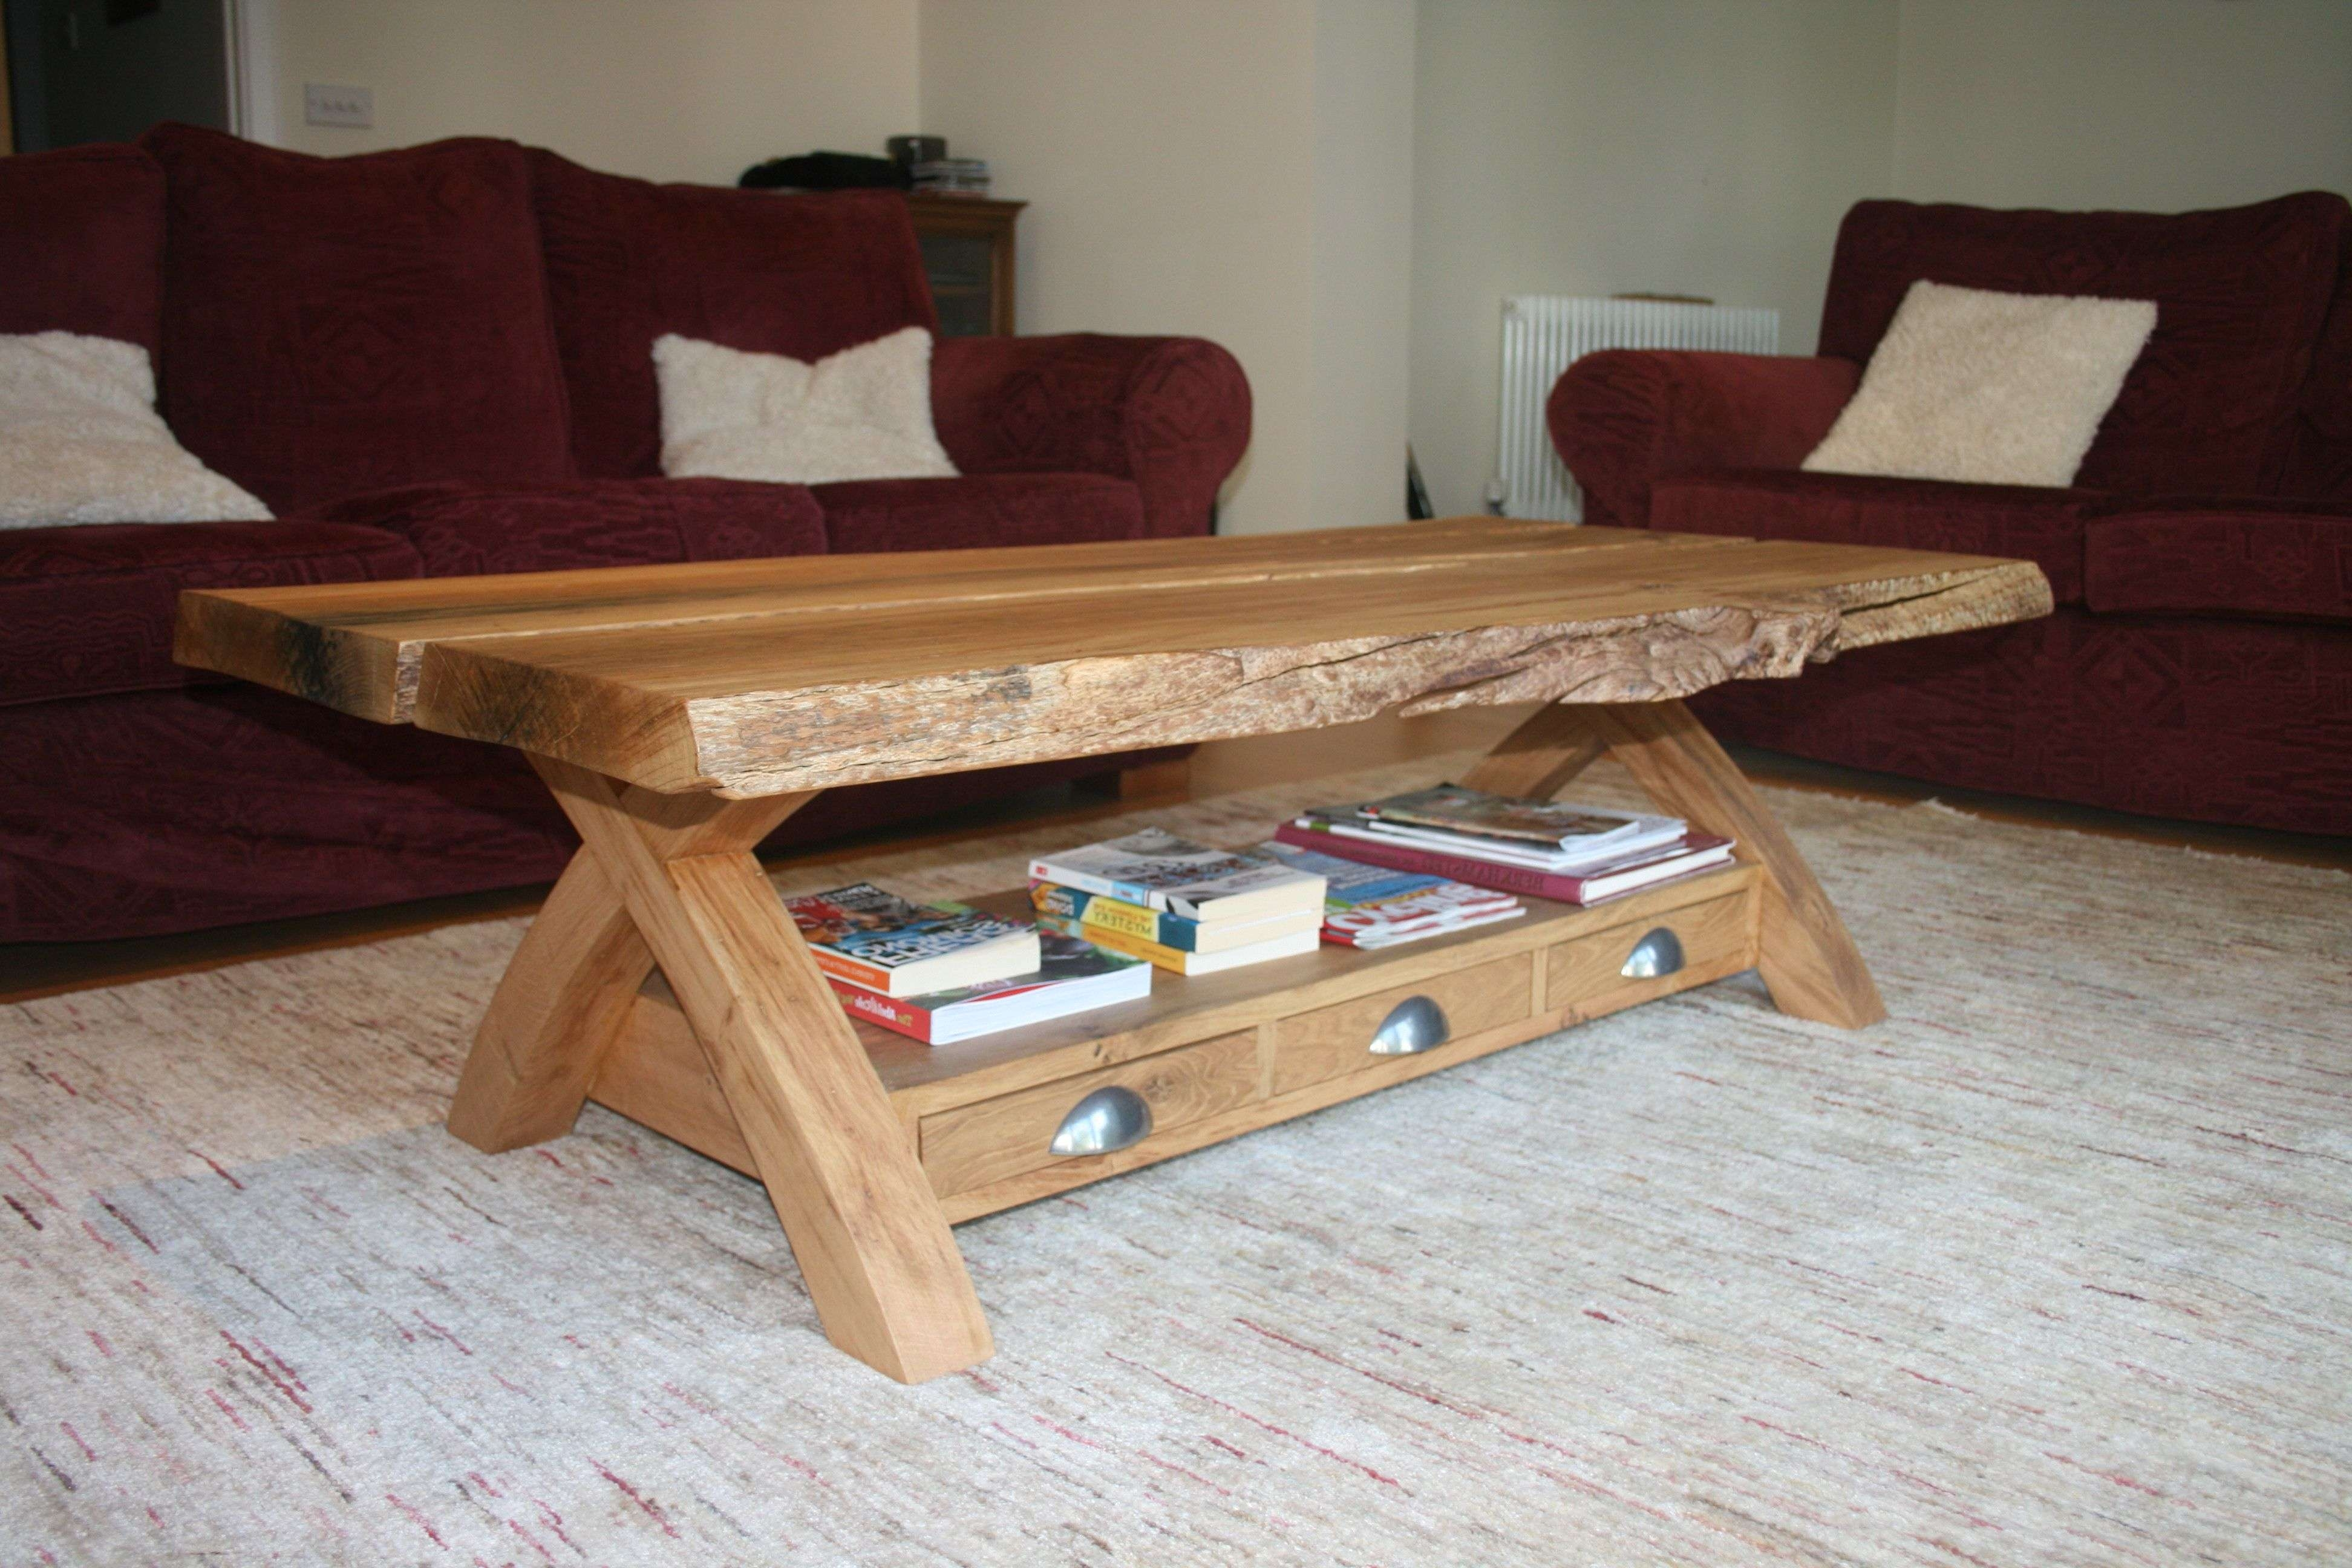 Coffee Tables : Simple Handmade Wood Furniture Living Room Leather Regarding Most Current Handmade Wooden Coffee Tables (View 2 of 20)